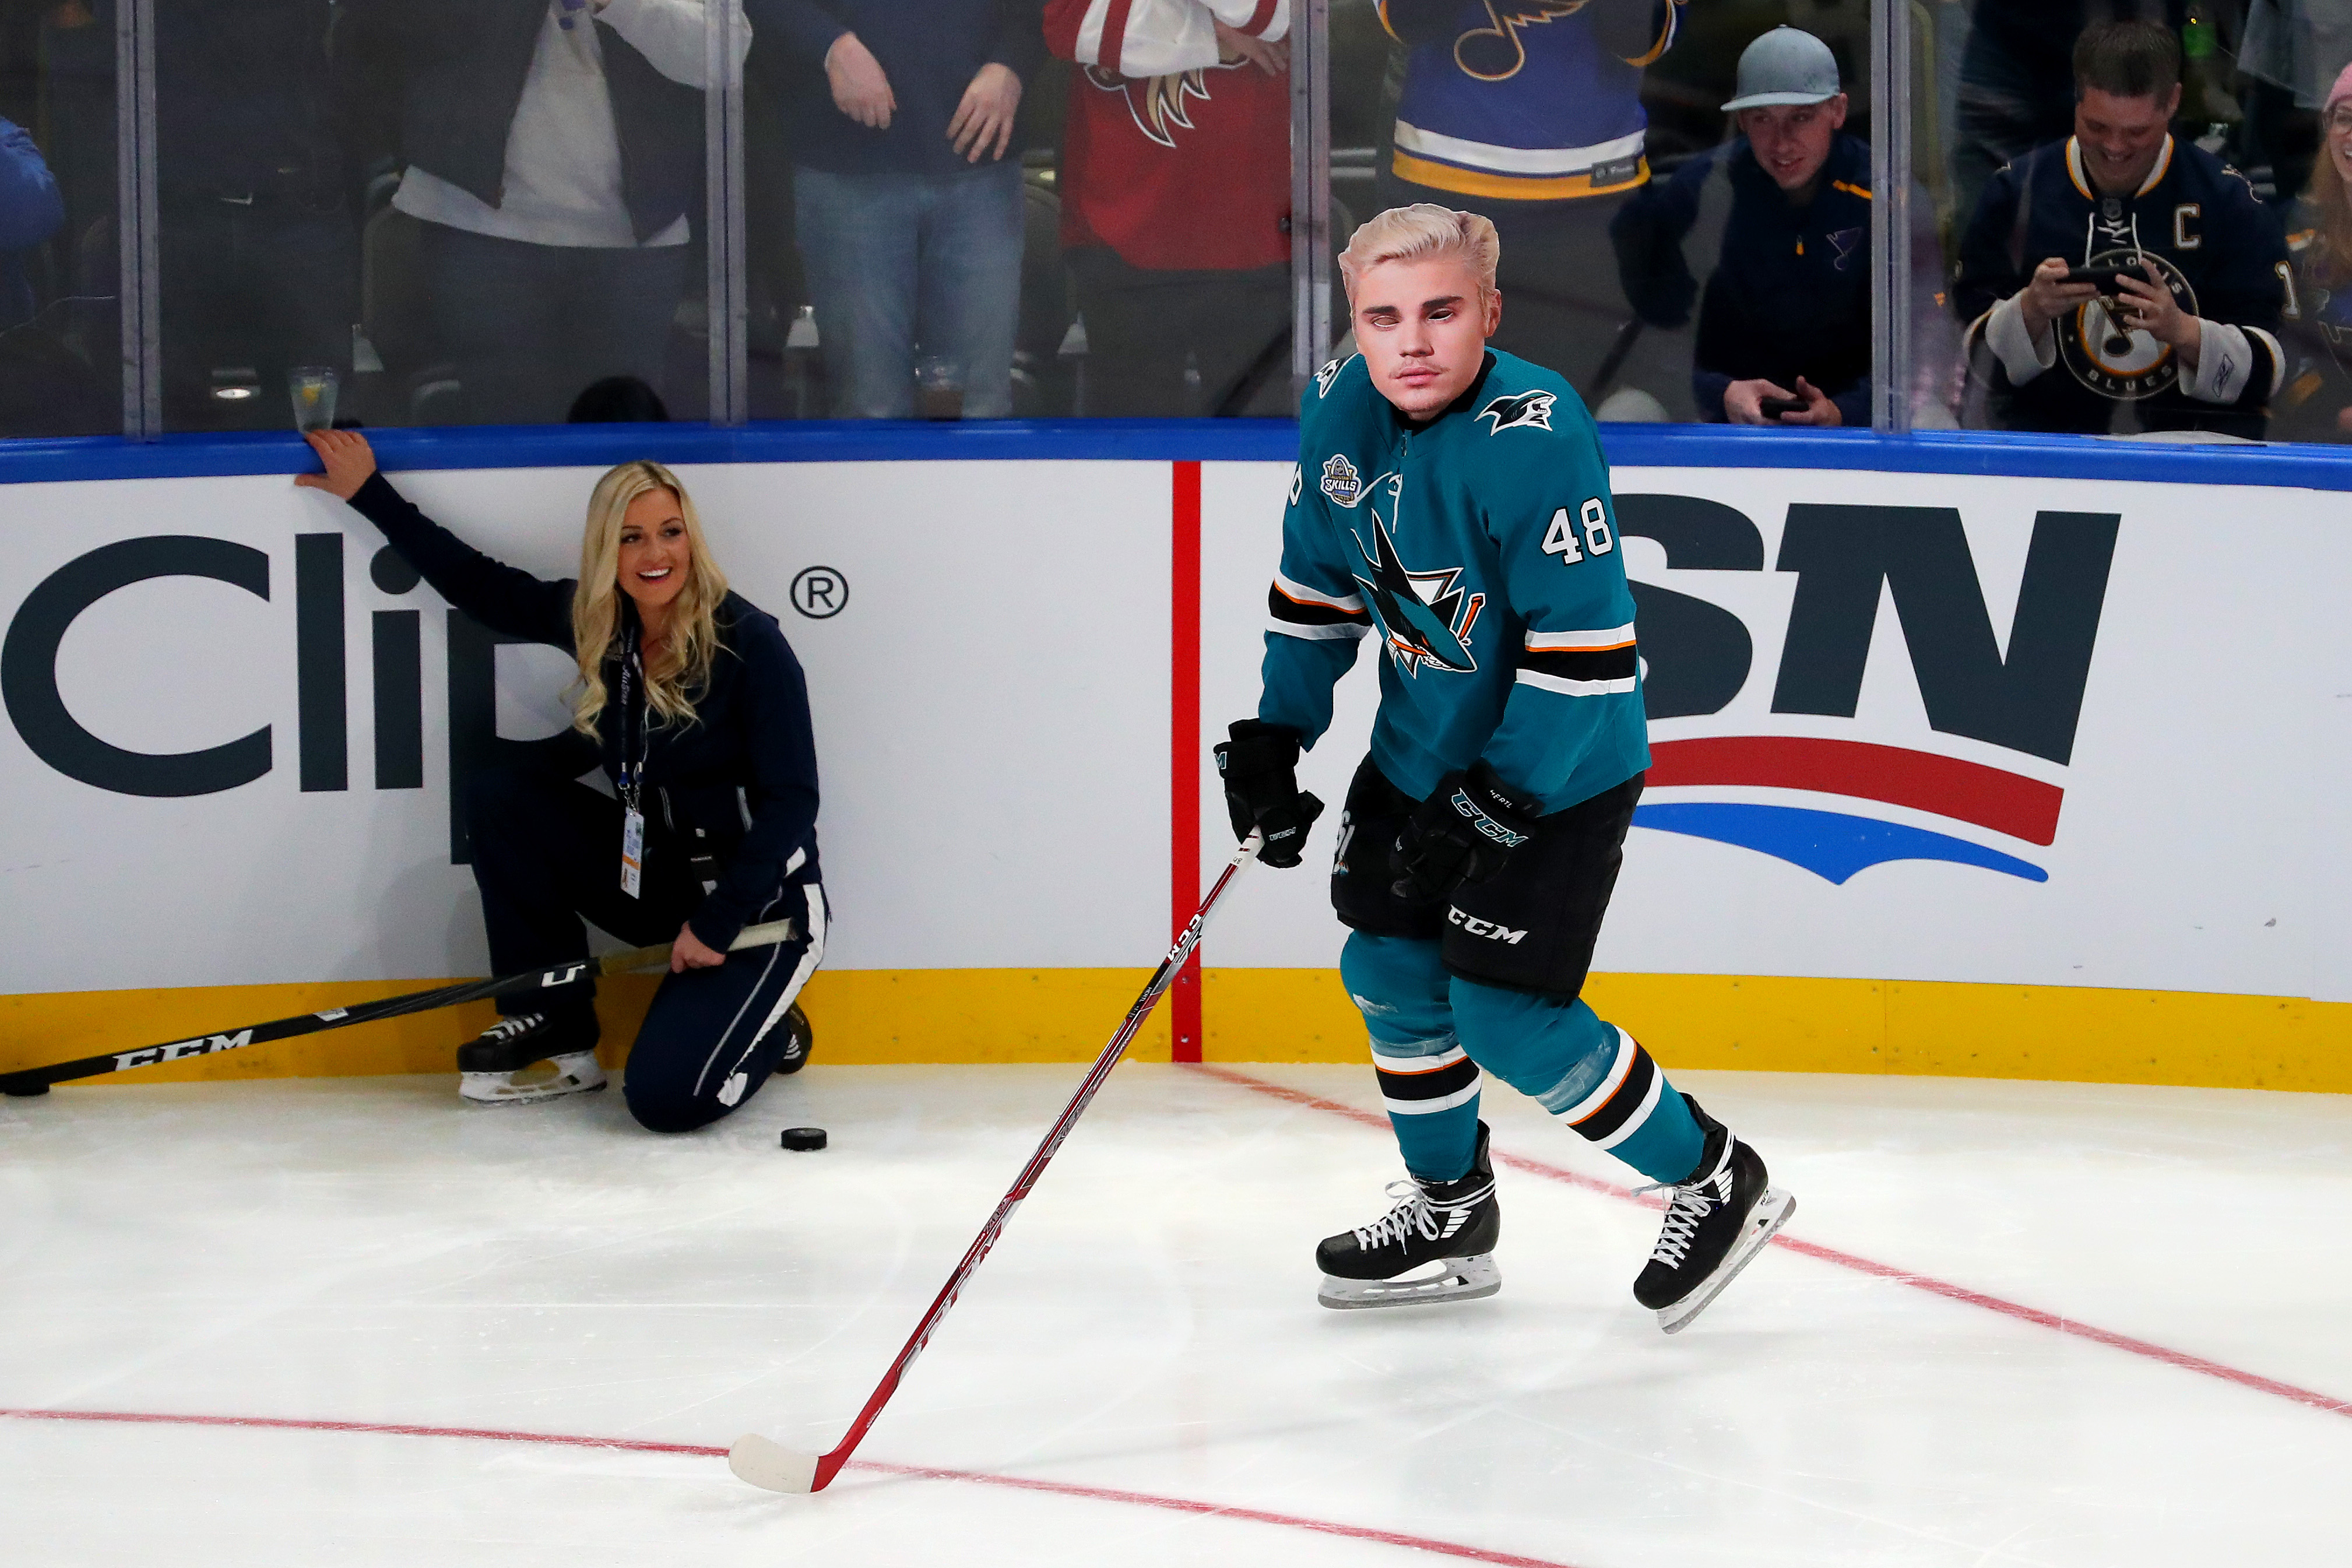 Tomas Hertl #48 of the San Jose Sharks skates with a Justin Bieber mask in the Bud Light NHL Save Streak during the 2020 NHL All-Star Skills Competition at Enterprise Center on January 24, 2020 in St Louis, Missouri.